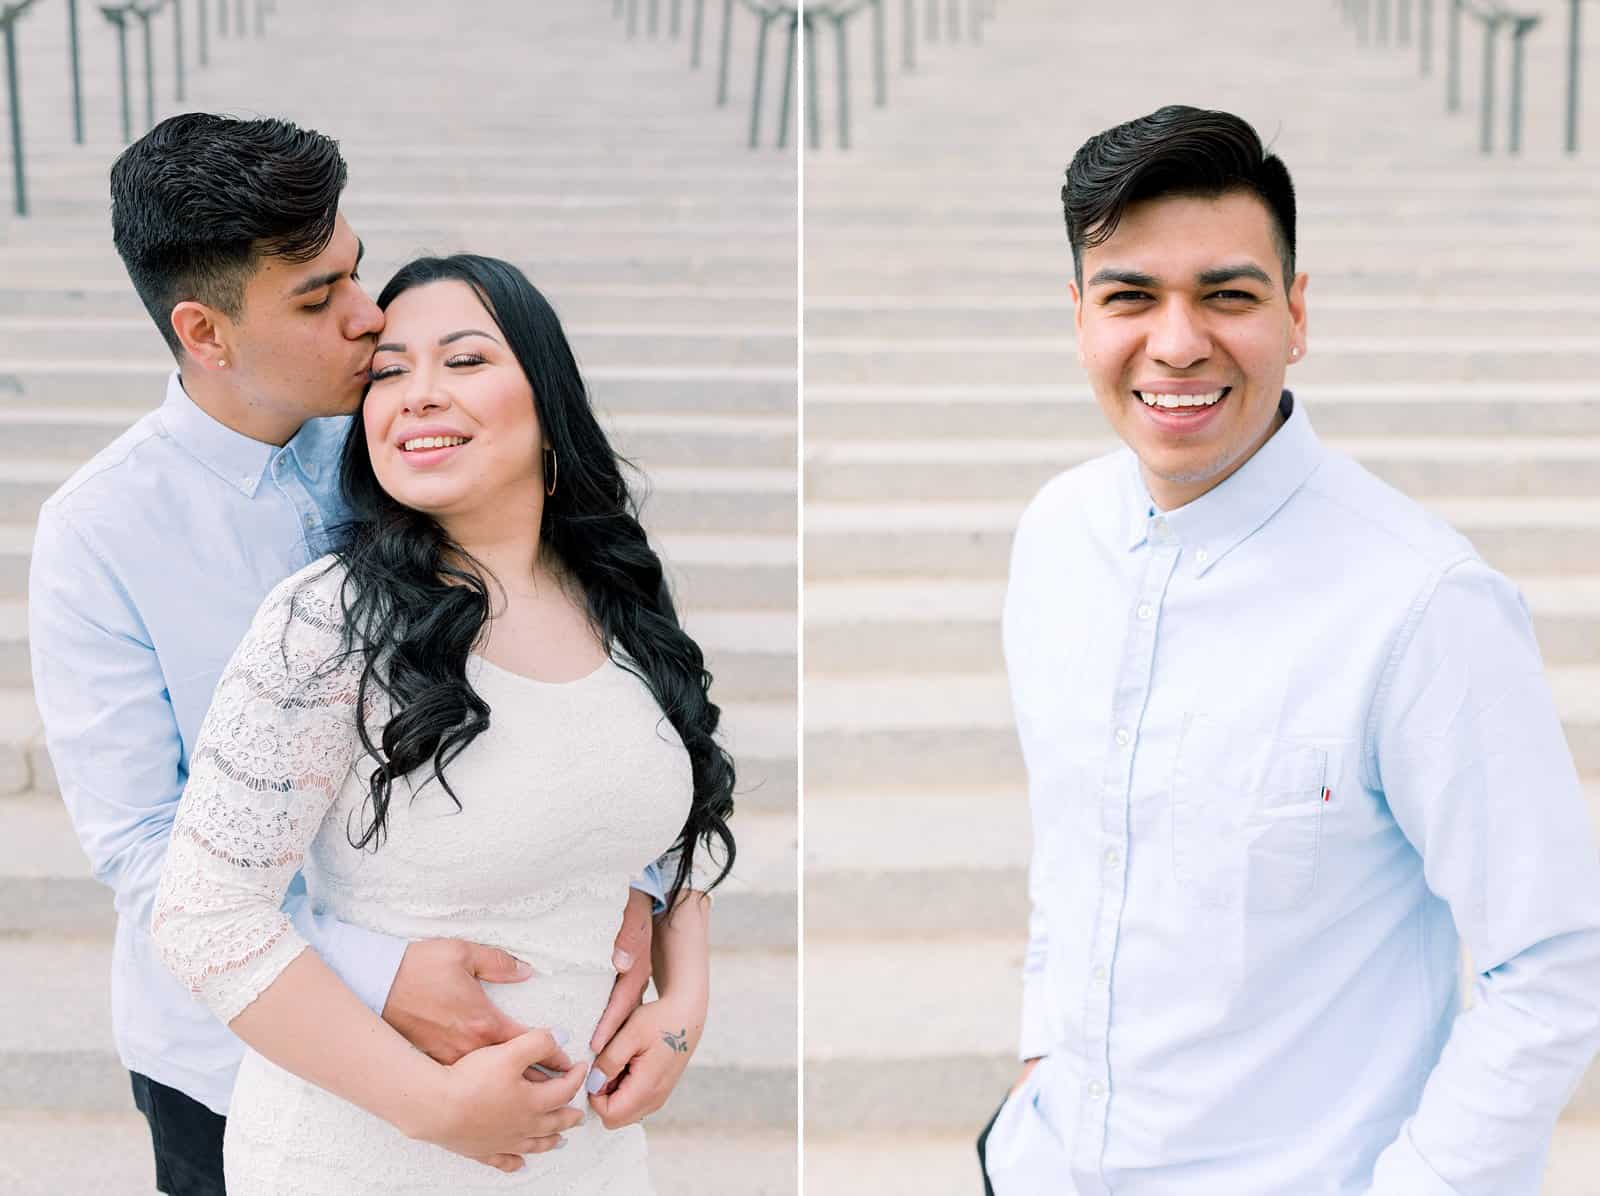 Classy engagement photos at the Utah State Capitol Building in downtown Salt Lake City, outfit for engagement pictures, short white lace dress and light blue button up shirt